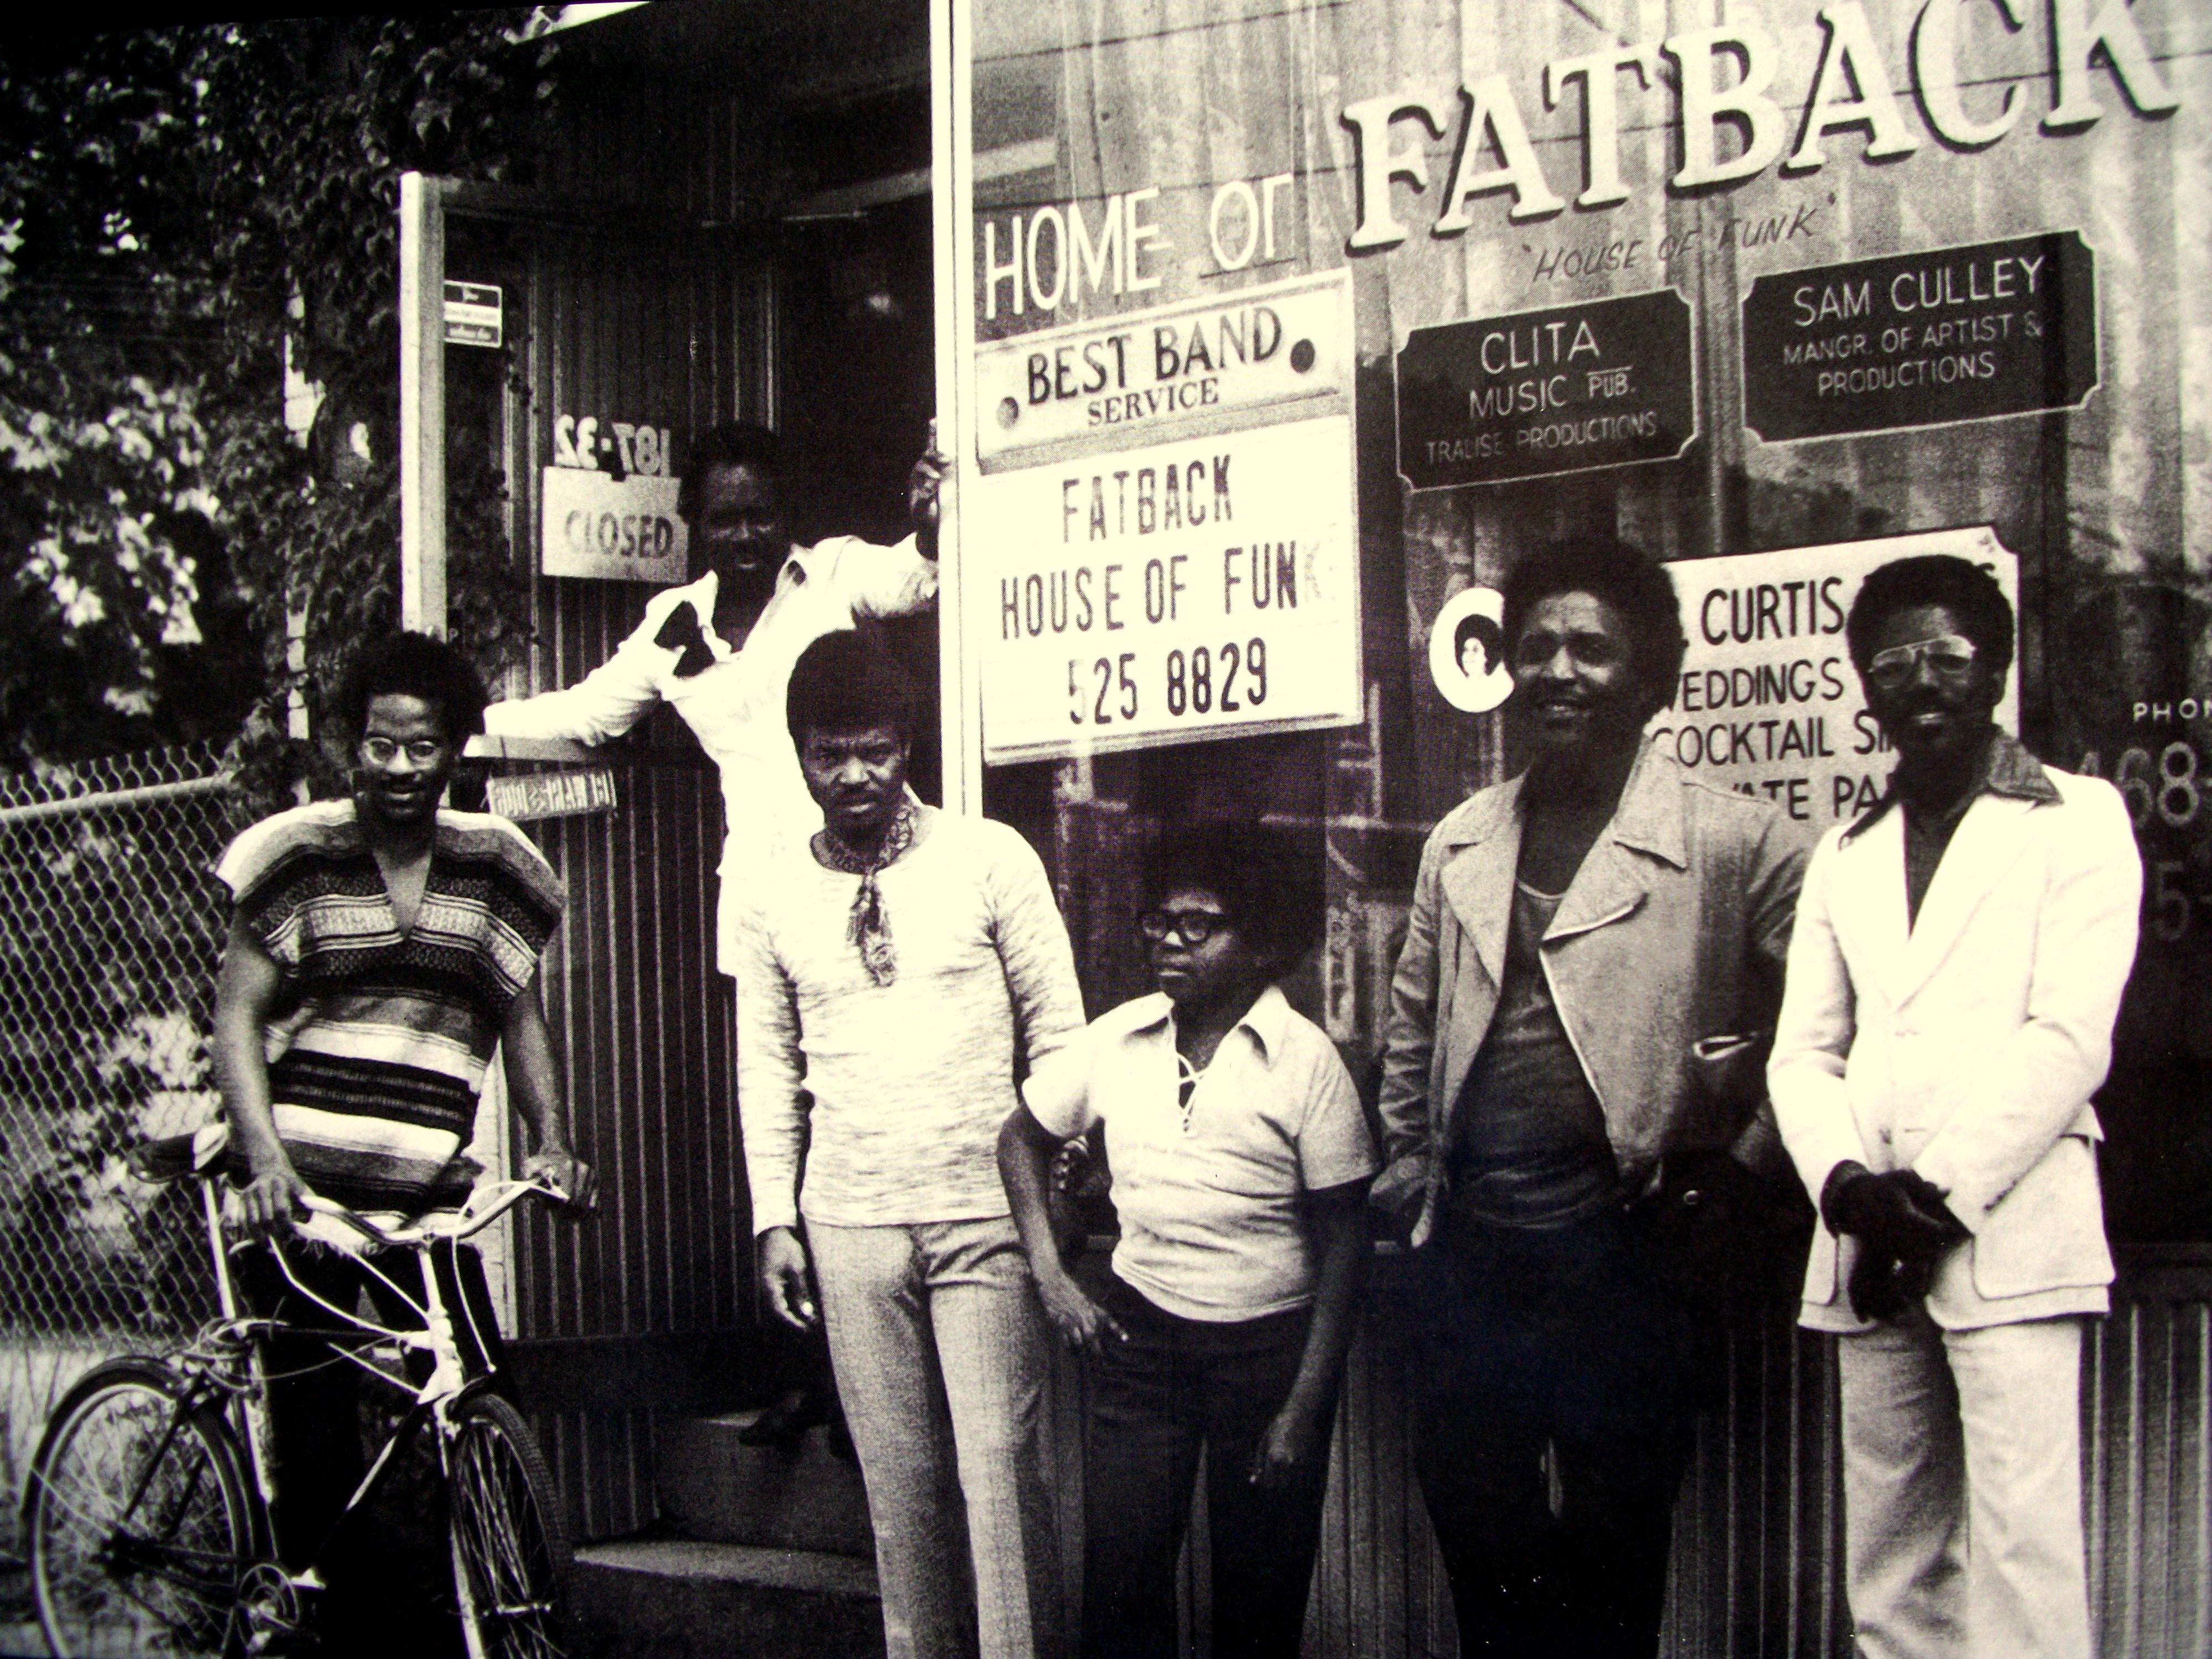 The Fatback Band - Spanish Hustle / ( Are You Ready ) Do The Bus Stop